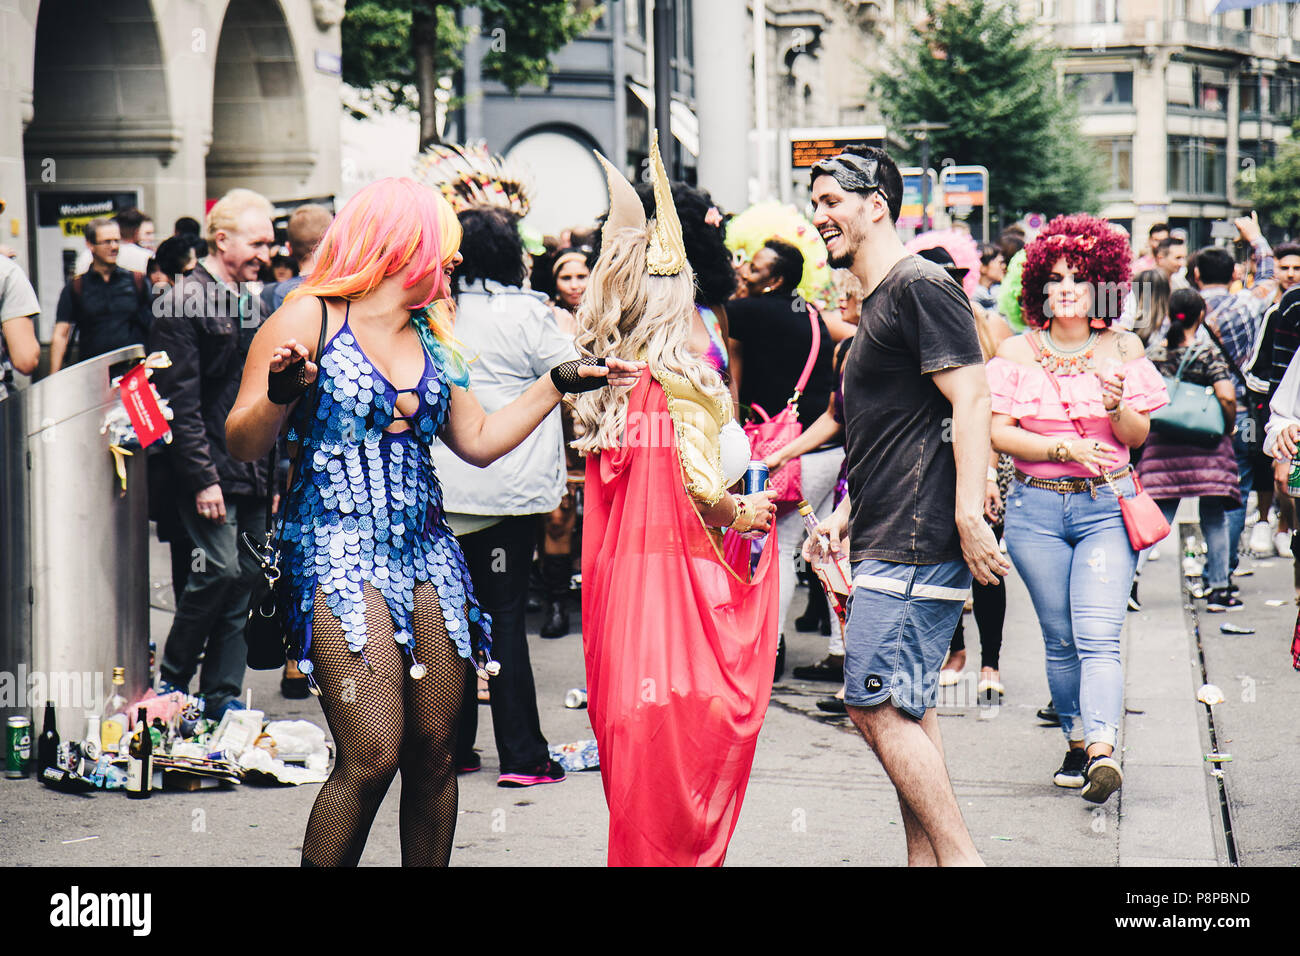 Zurich, Switzerland - August 12, 2017: People of all ages dressed up in fancy costumes for the Street Parade in Zürich and having fun. - Stock Image